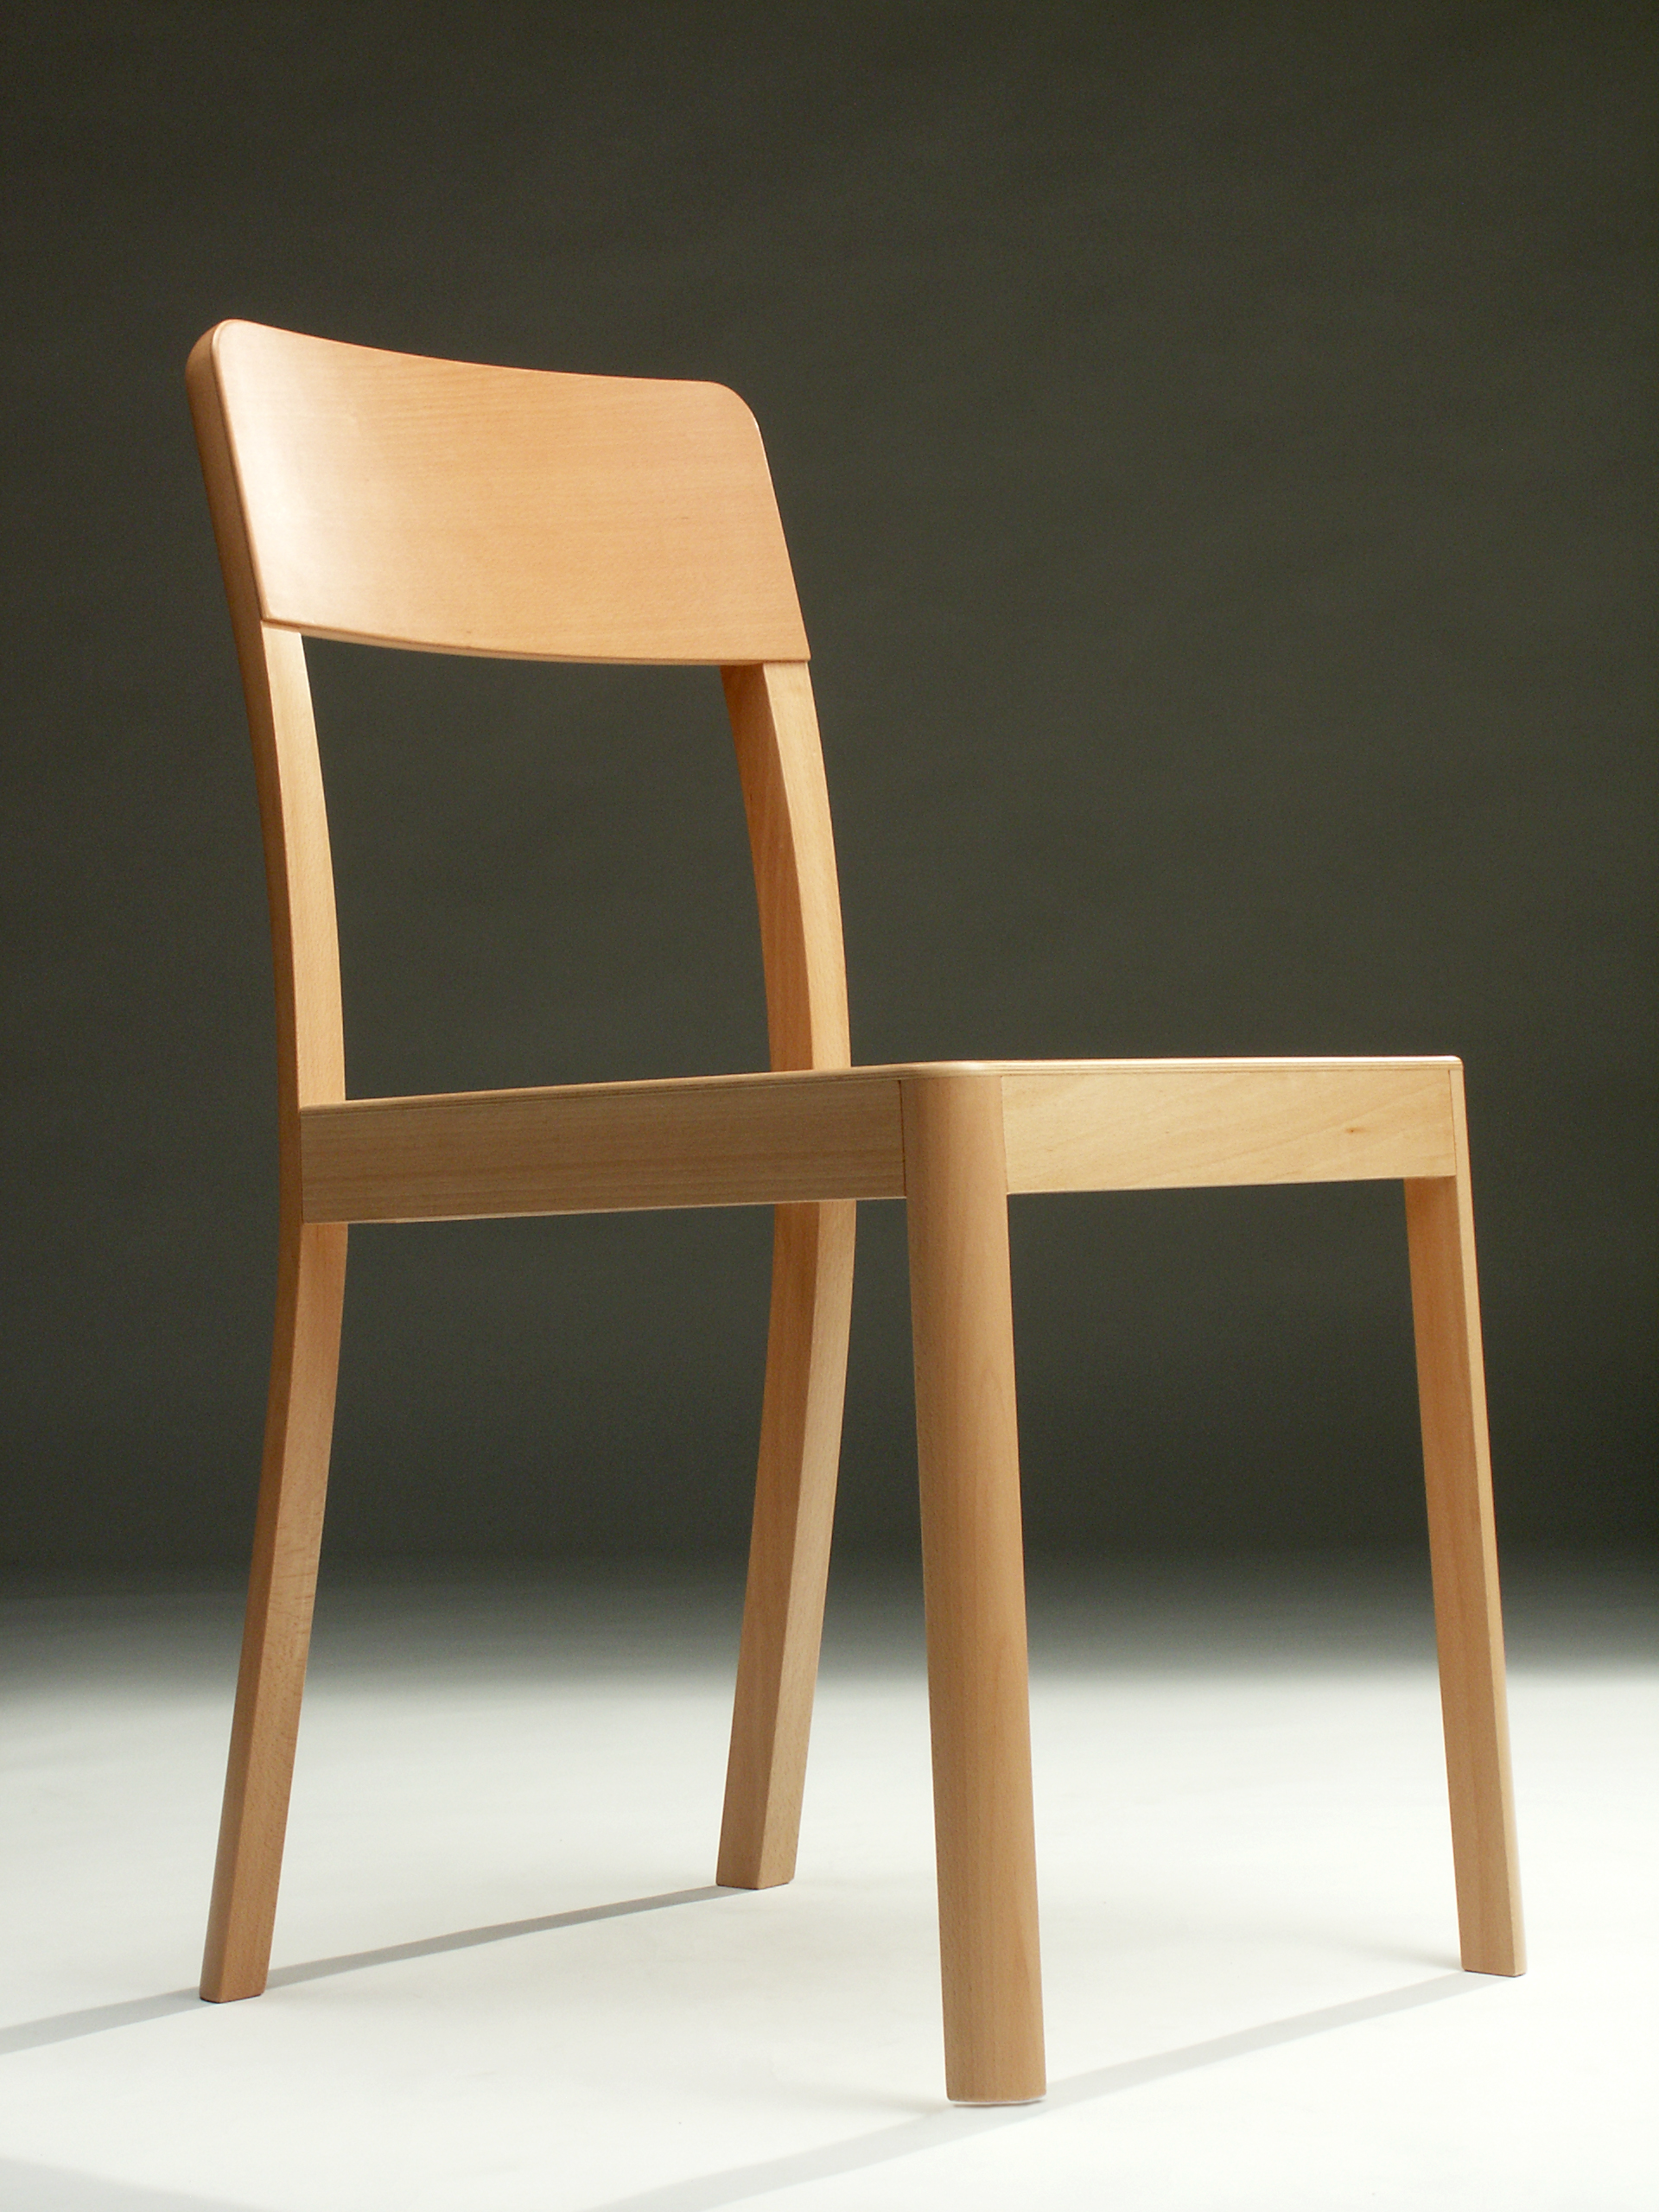 TheHome_Chair_photos_woodenchair_4choosen_01.jpg